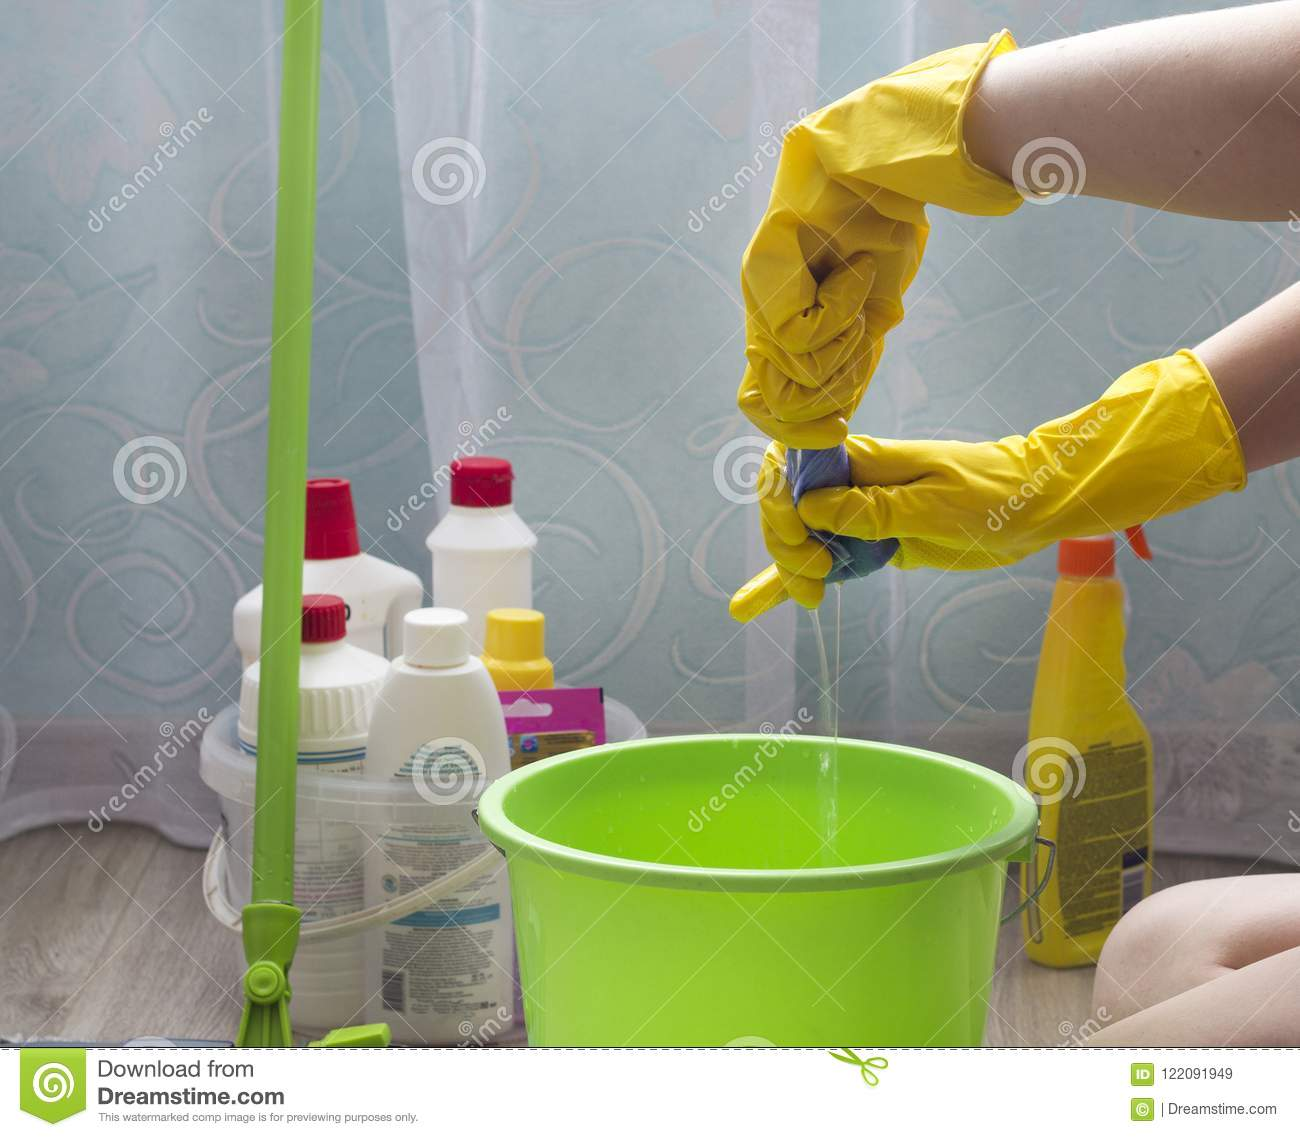 A girl in yellow gloves squeezes a rag into a bucket domestic